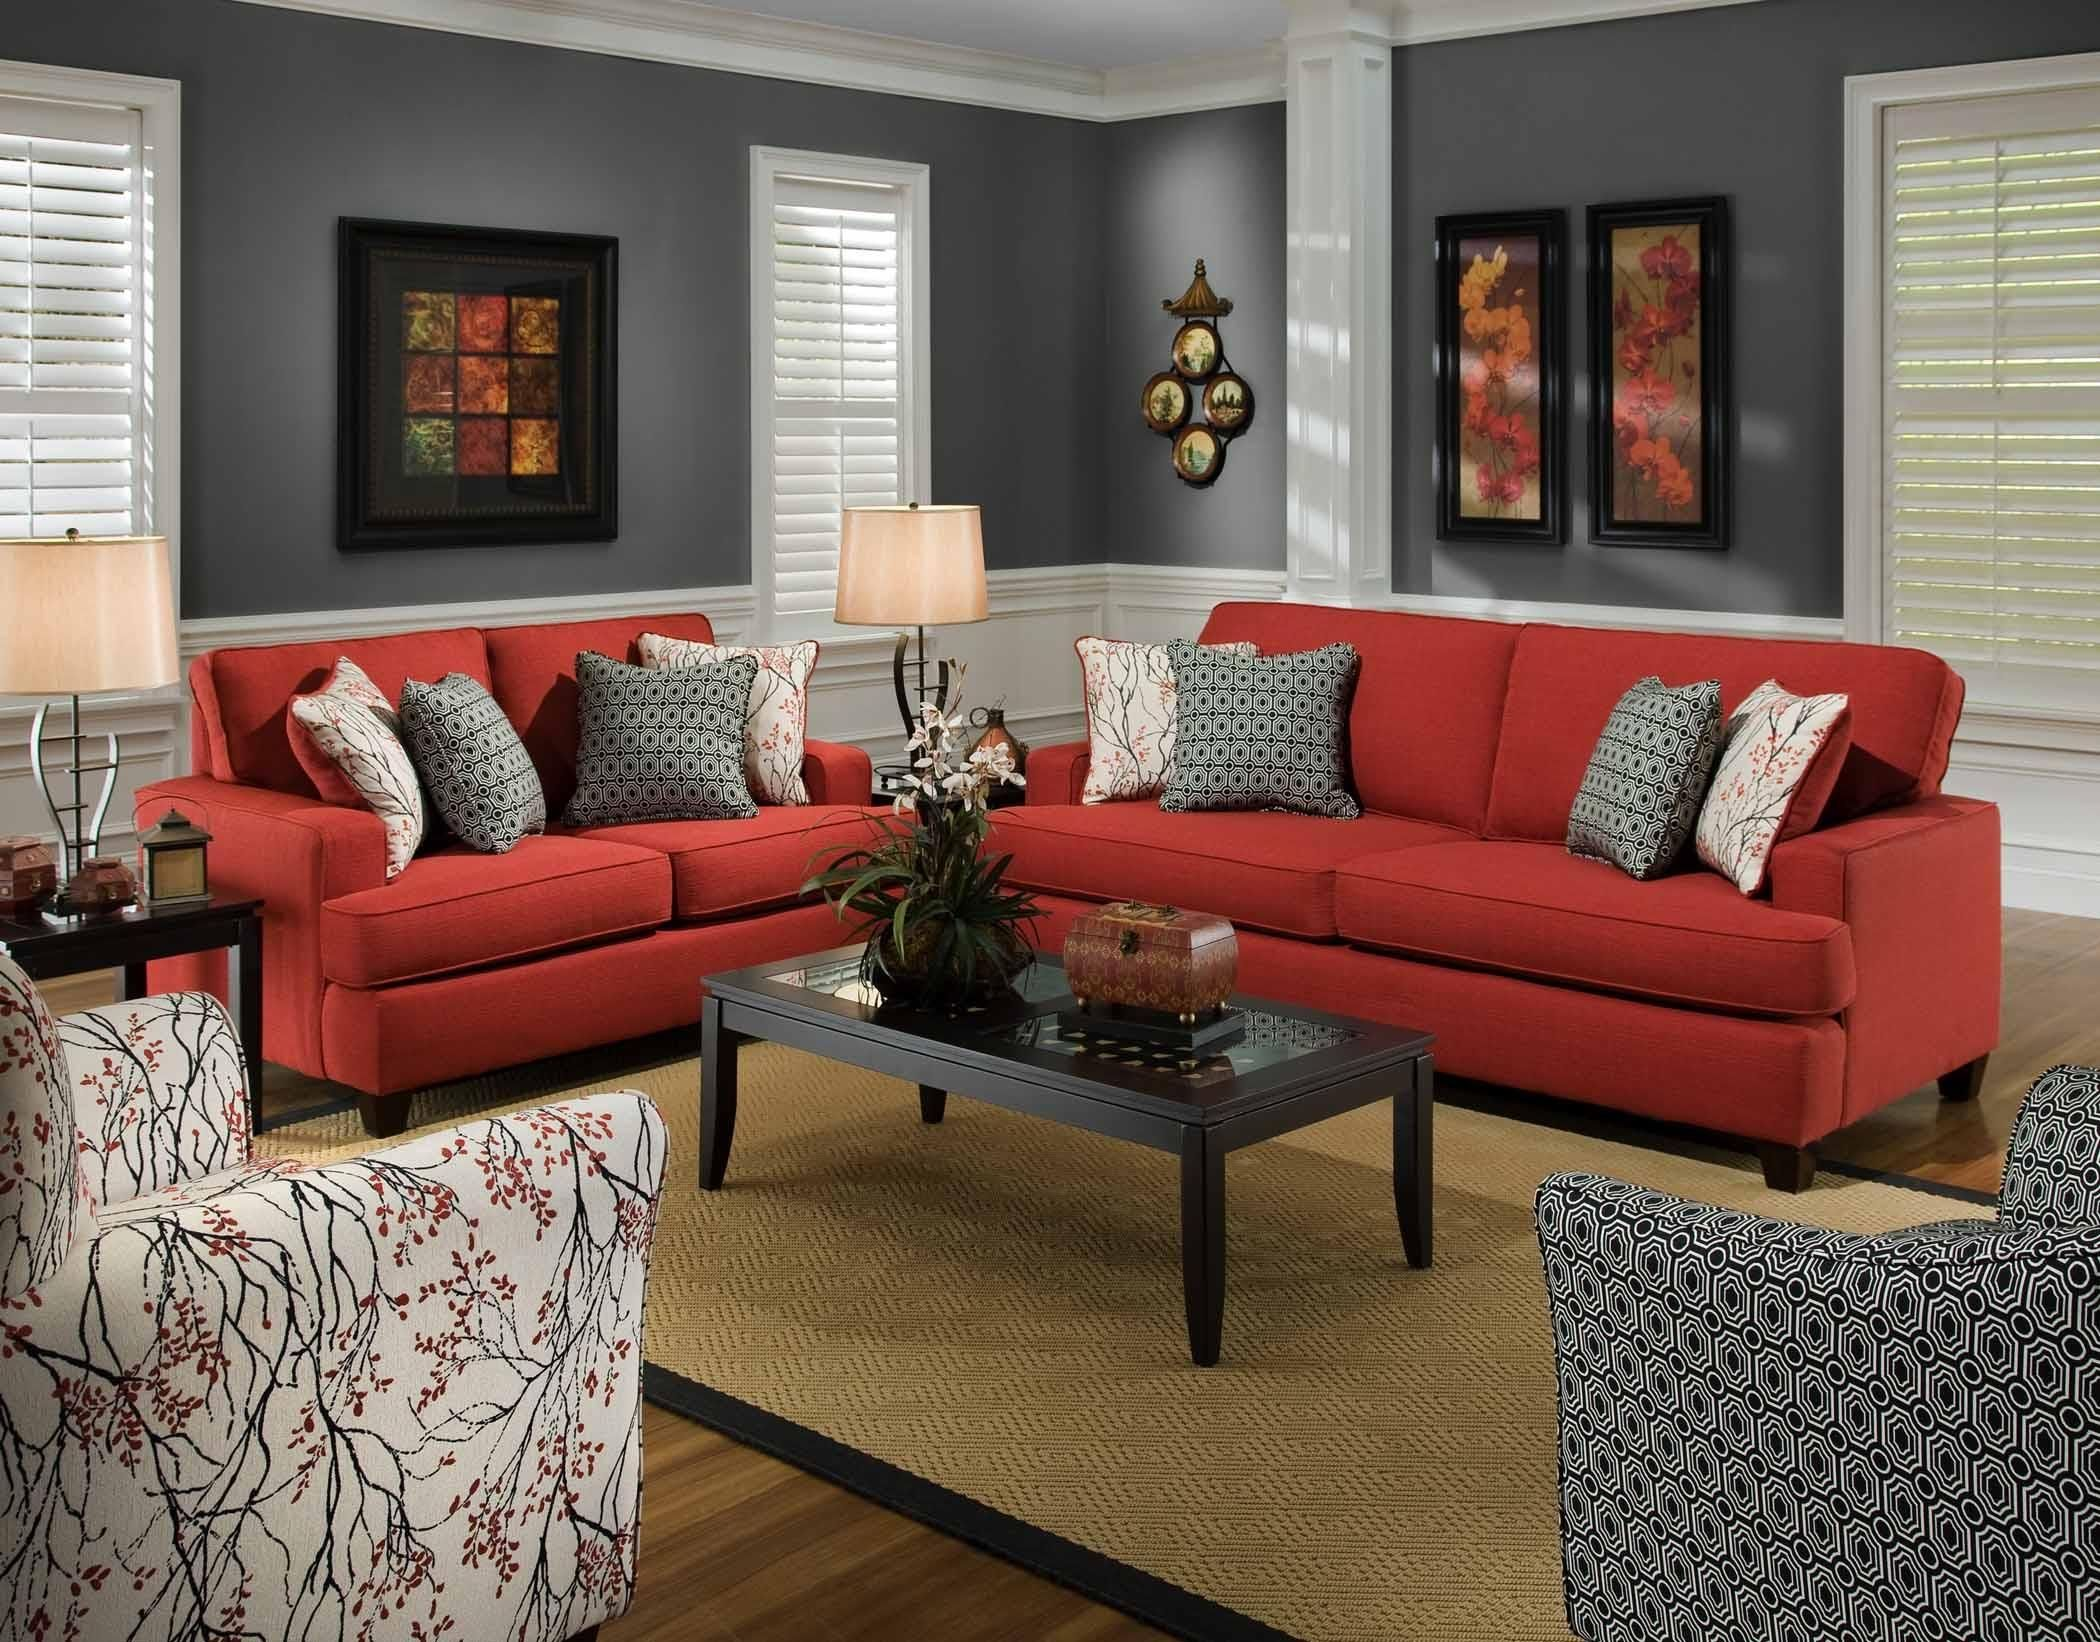 Red Living RoomsGrey And RoomLiving Room Decor With Grey WallsGray Walls Brown CouchModern DesignGray CouchesRed